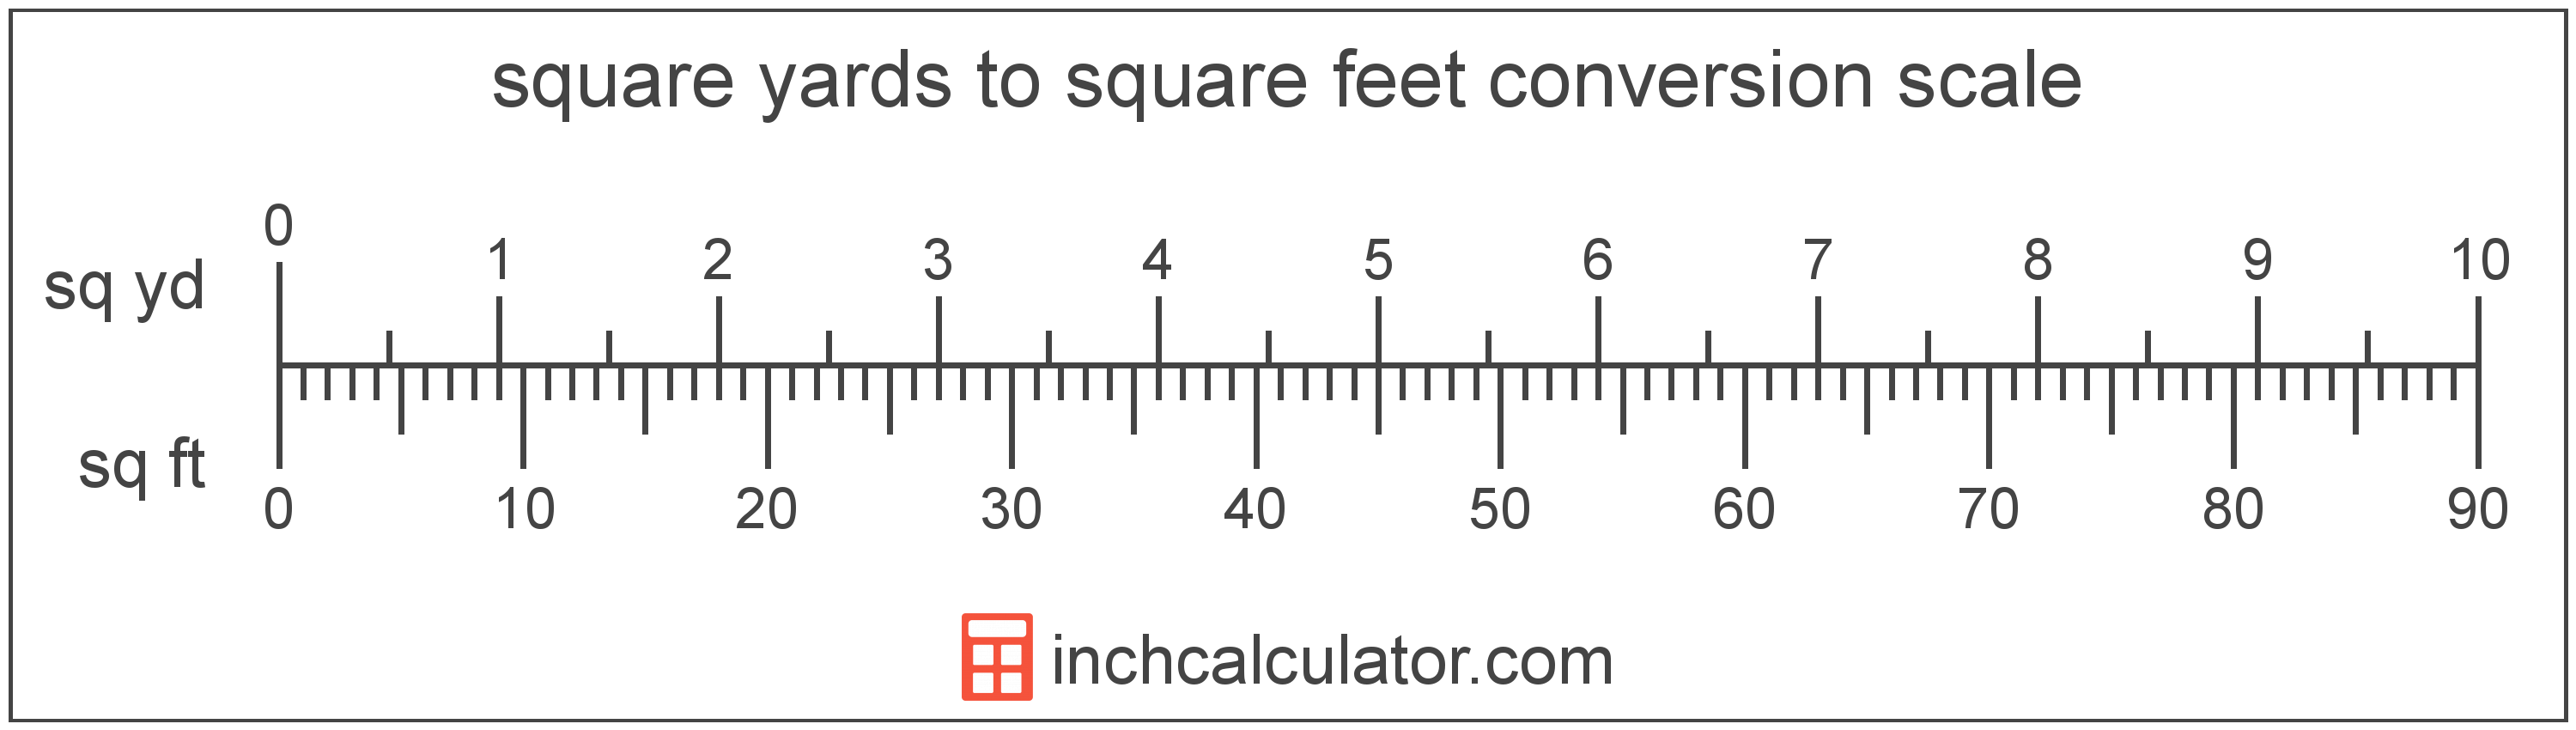 Square Yards To Square Feet Conversion Sq Yd To Sq Ft